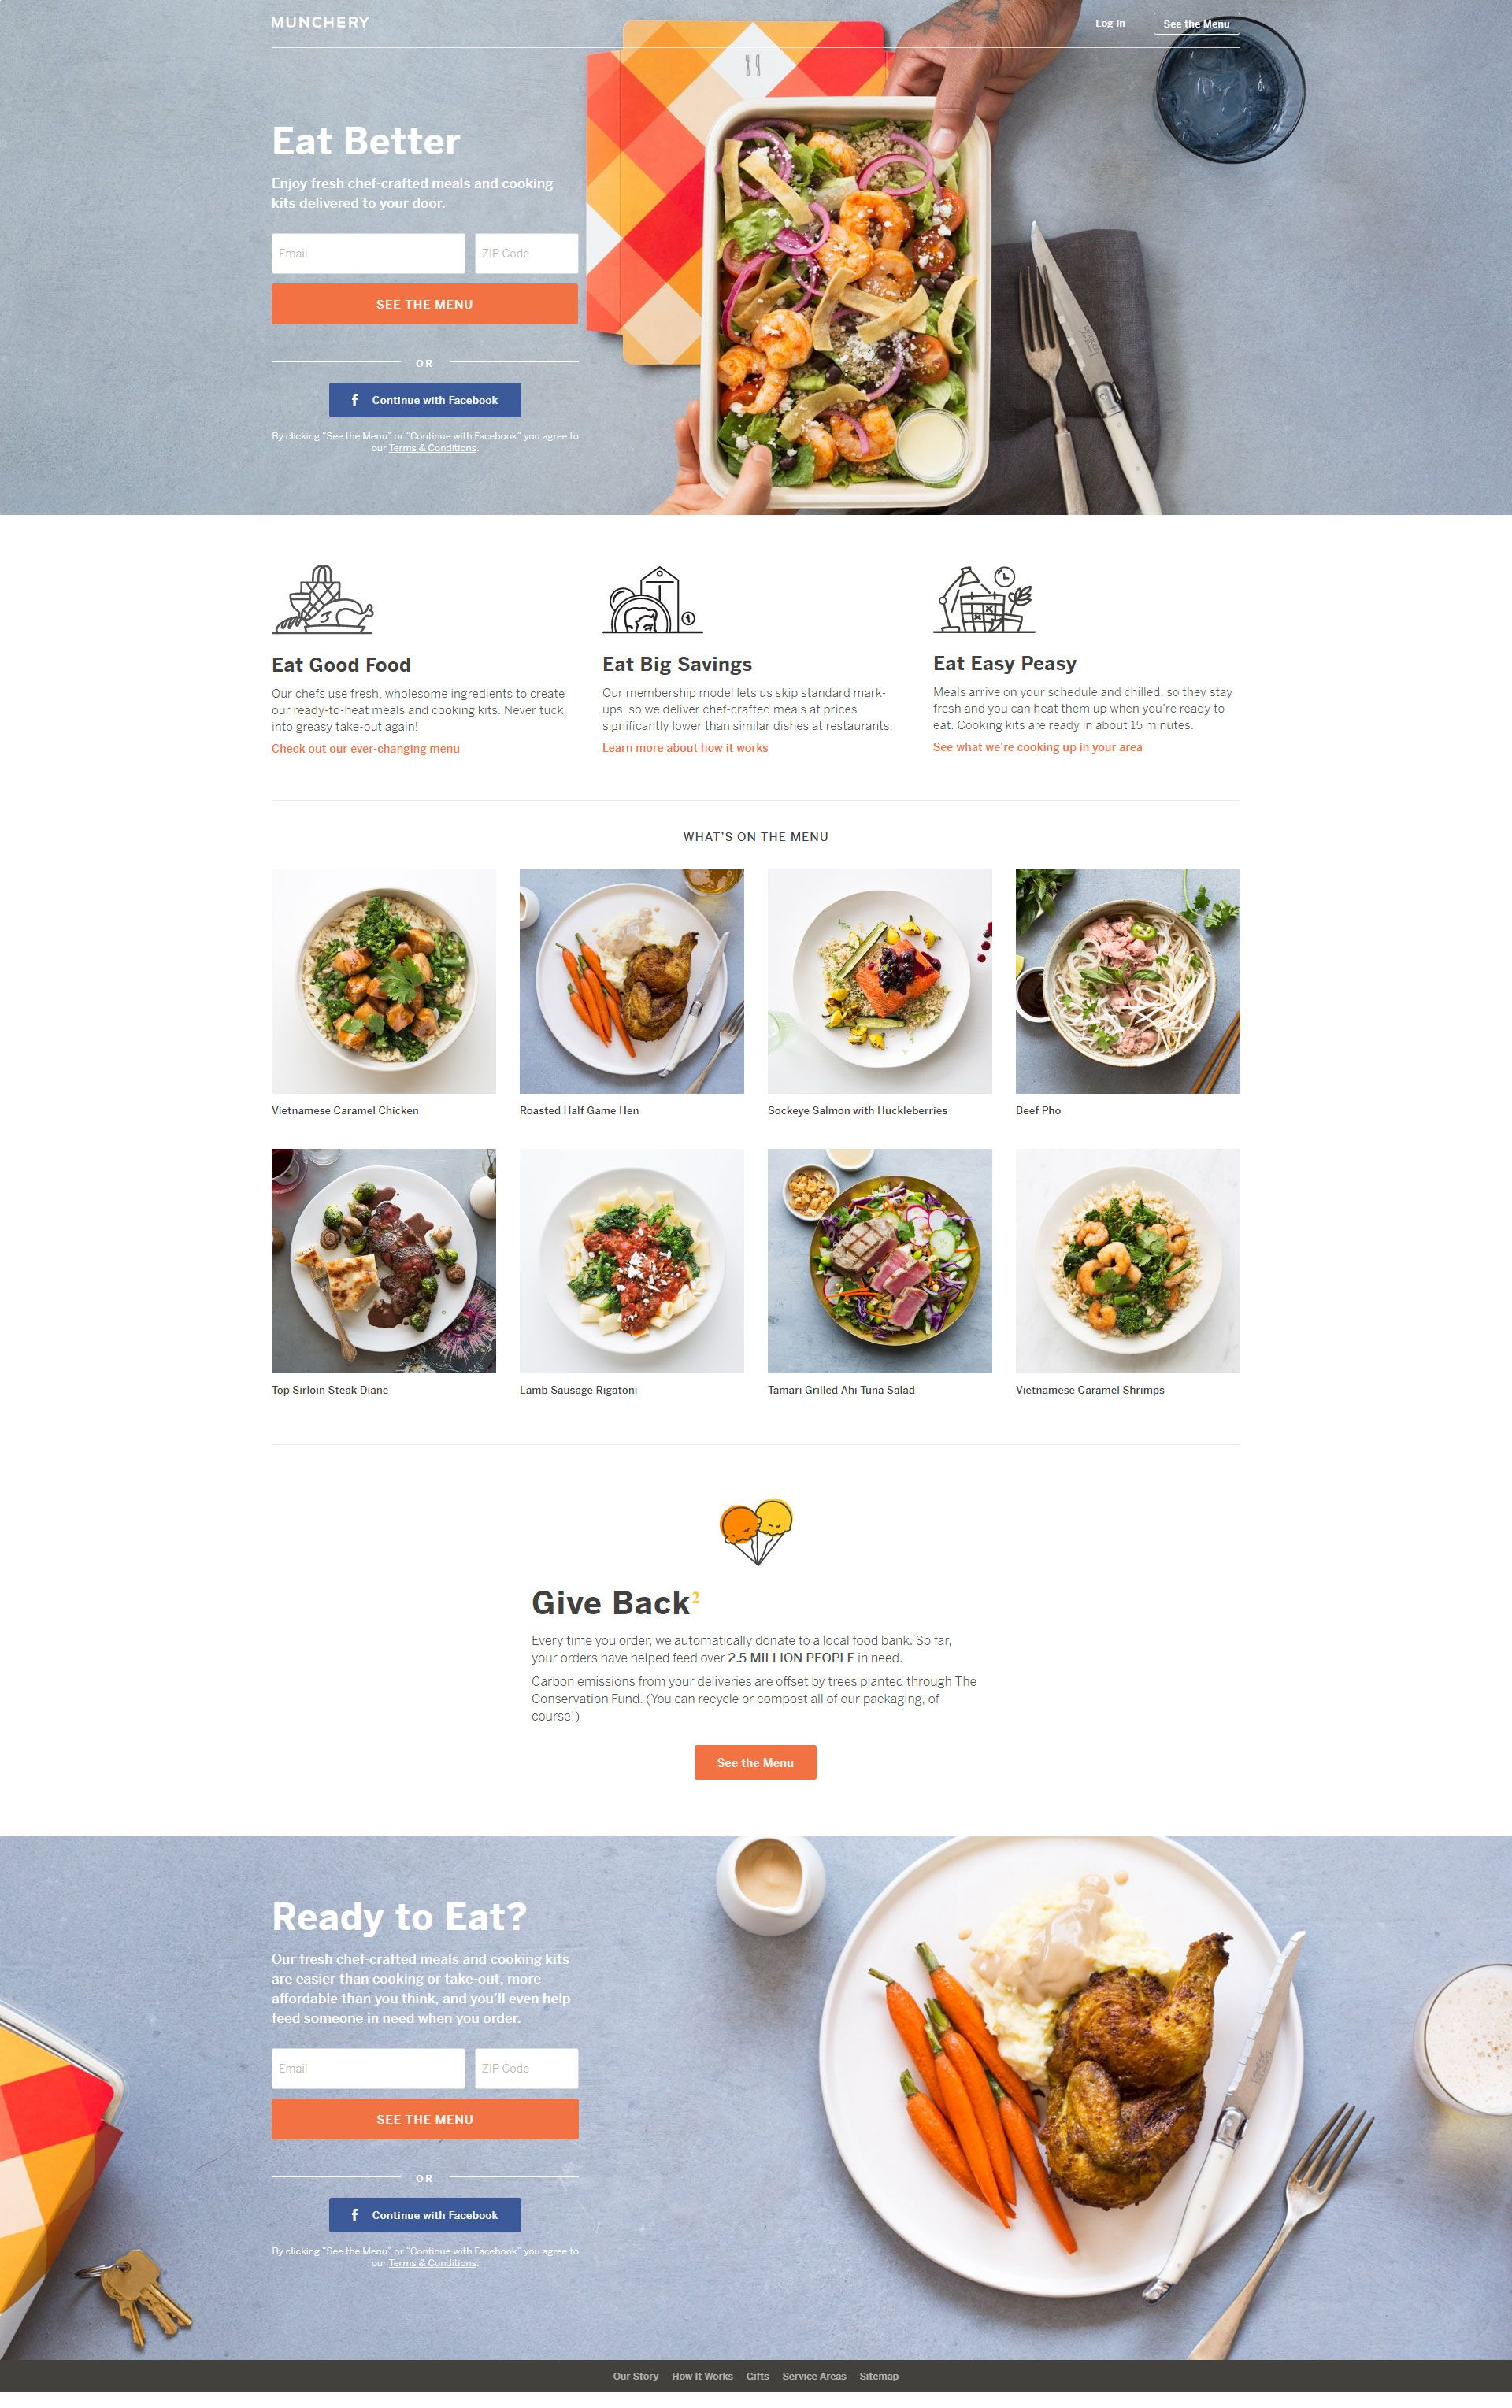 Munchery food delivery service httpsmunchery web food forumfinder